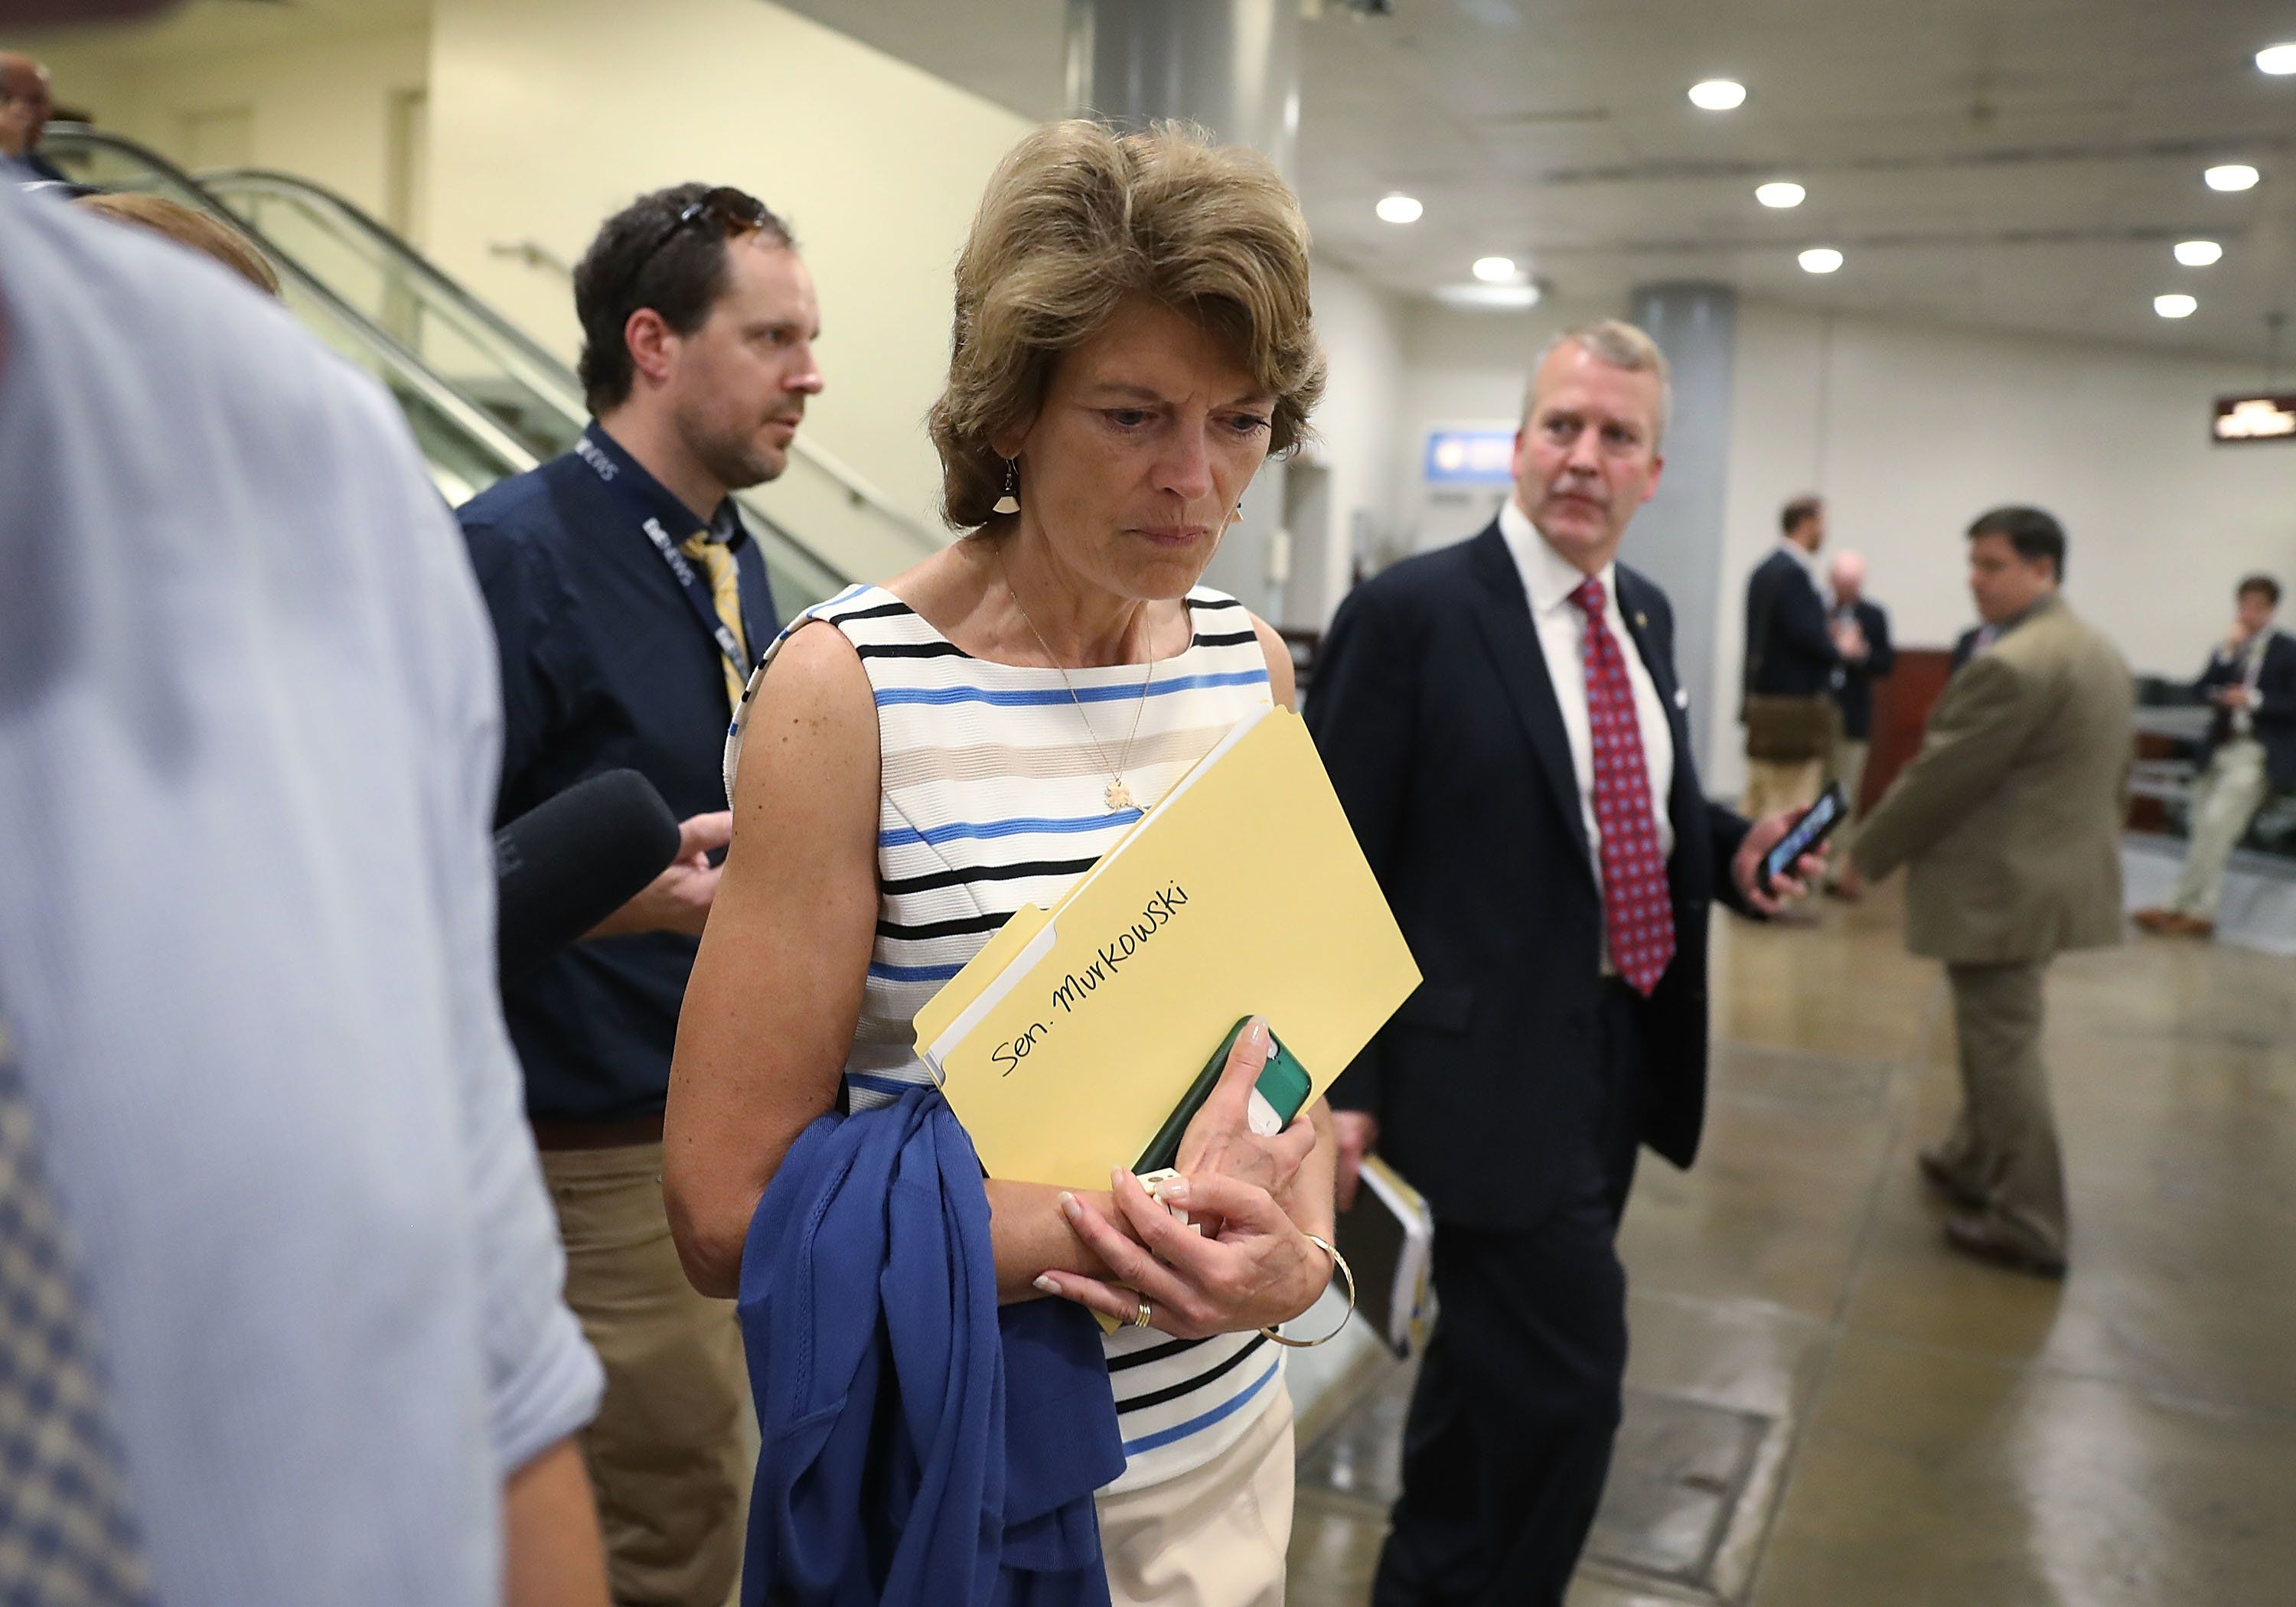 WASHINGTON, DC - JULY 19: Sen. Lisa Murkowski (AK) arrives for an all-senators closed briefing on ISIL in the U.S. Capitol on July 19, 2017 in Washington, DC. The Senators were receiving an update on the fight against the terror group.  (Photo by Joe Raedle/Getty Images)